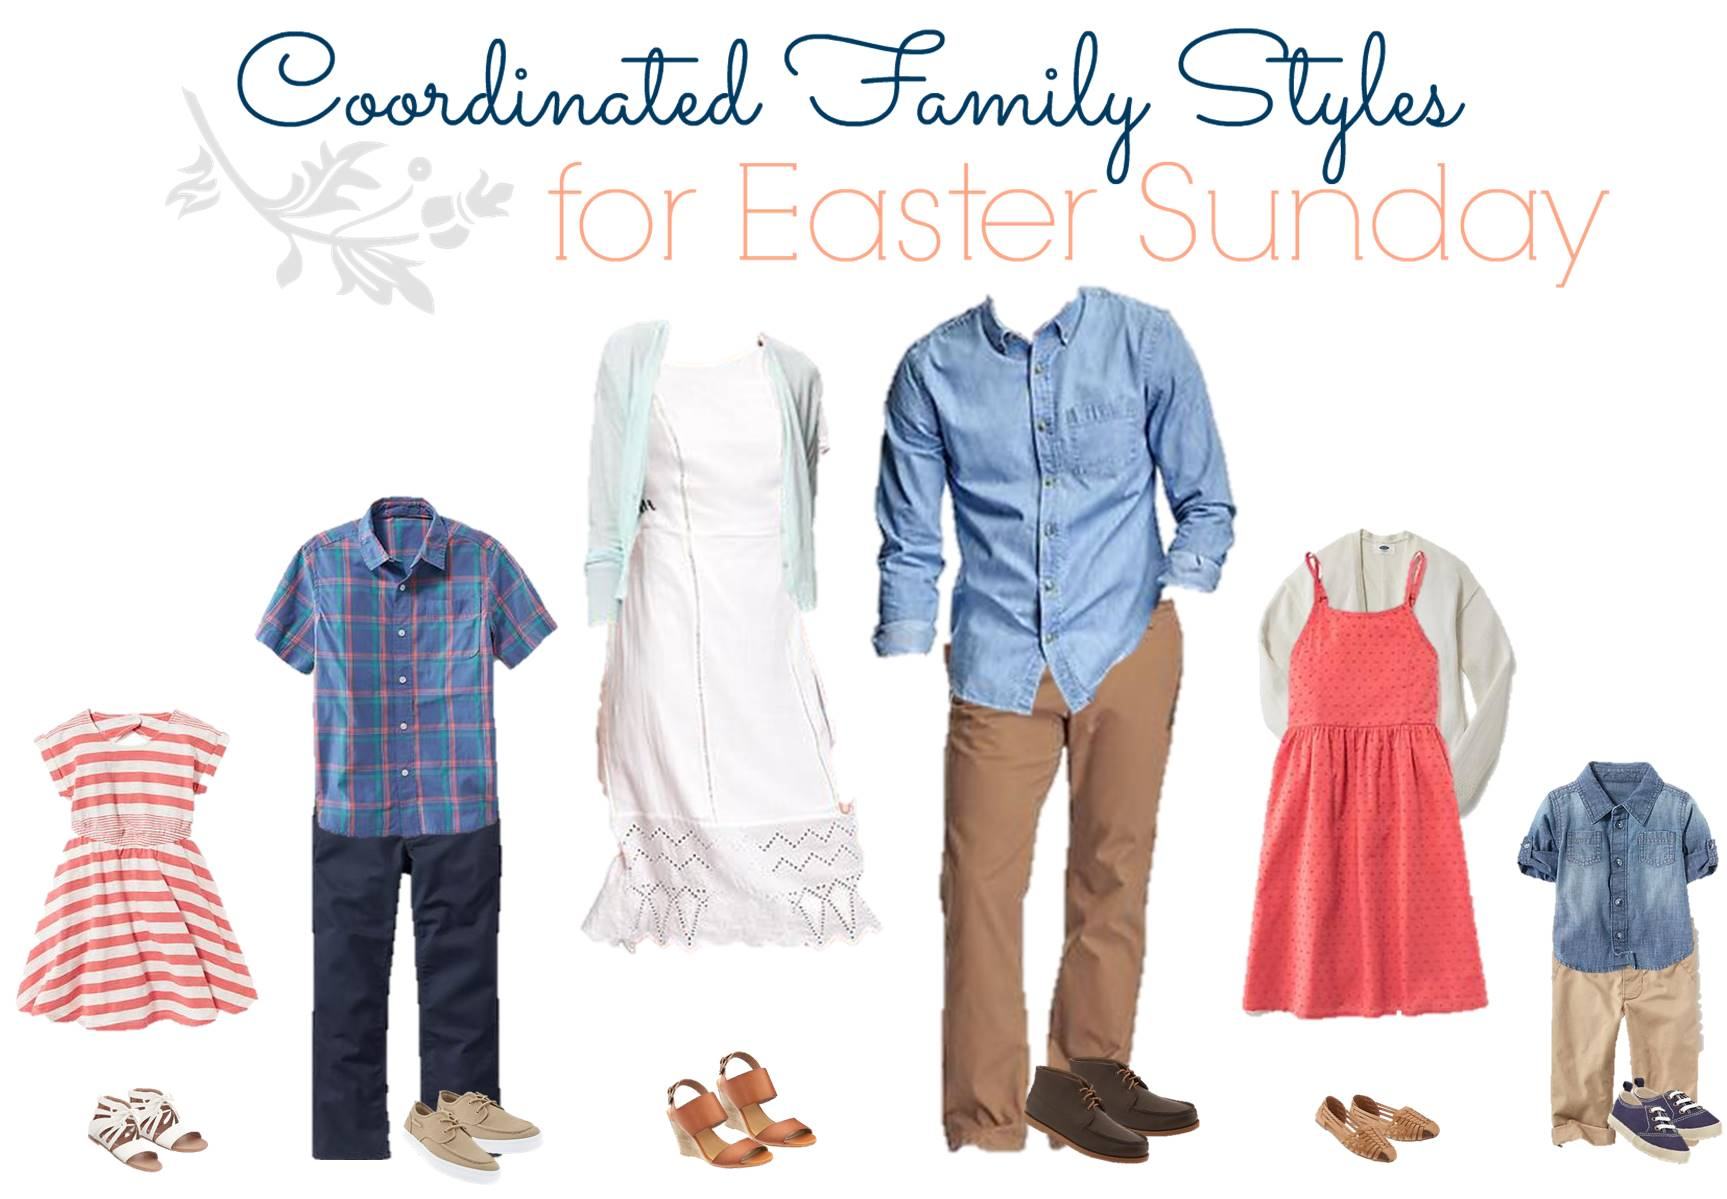 Easter Sunday Outfits for the Family - Old Navy